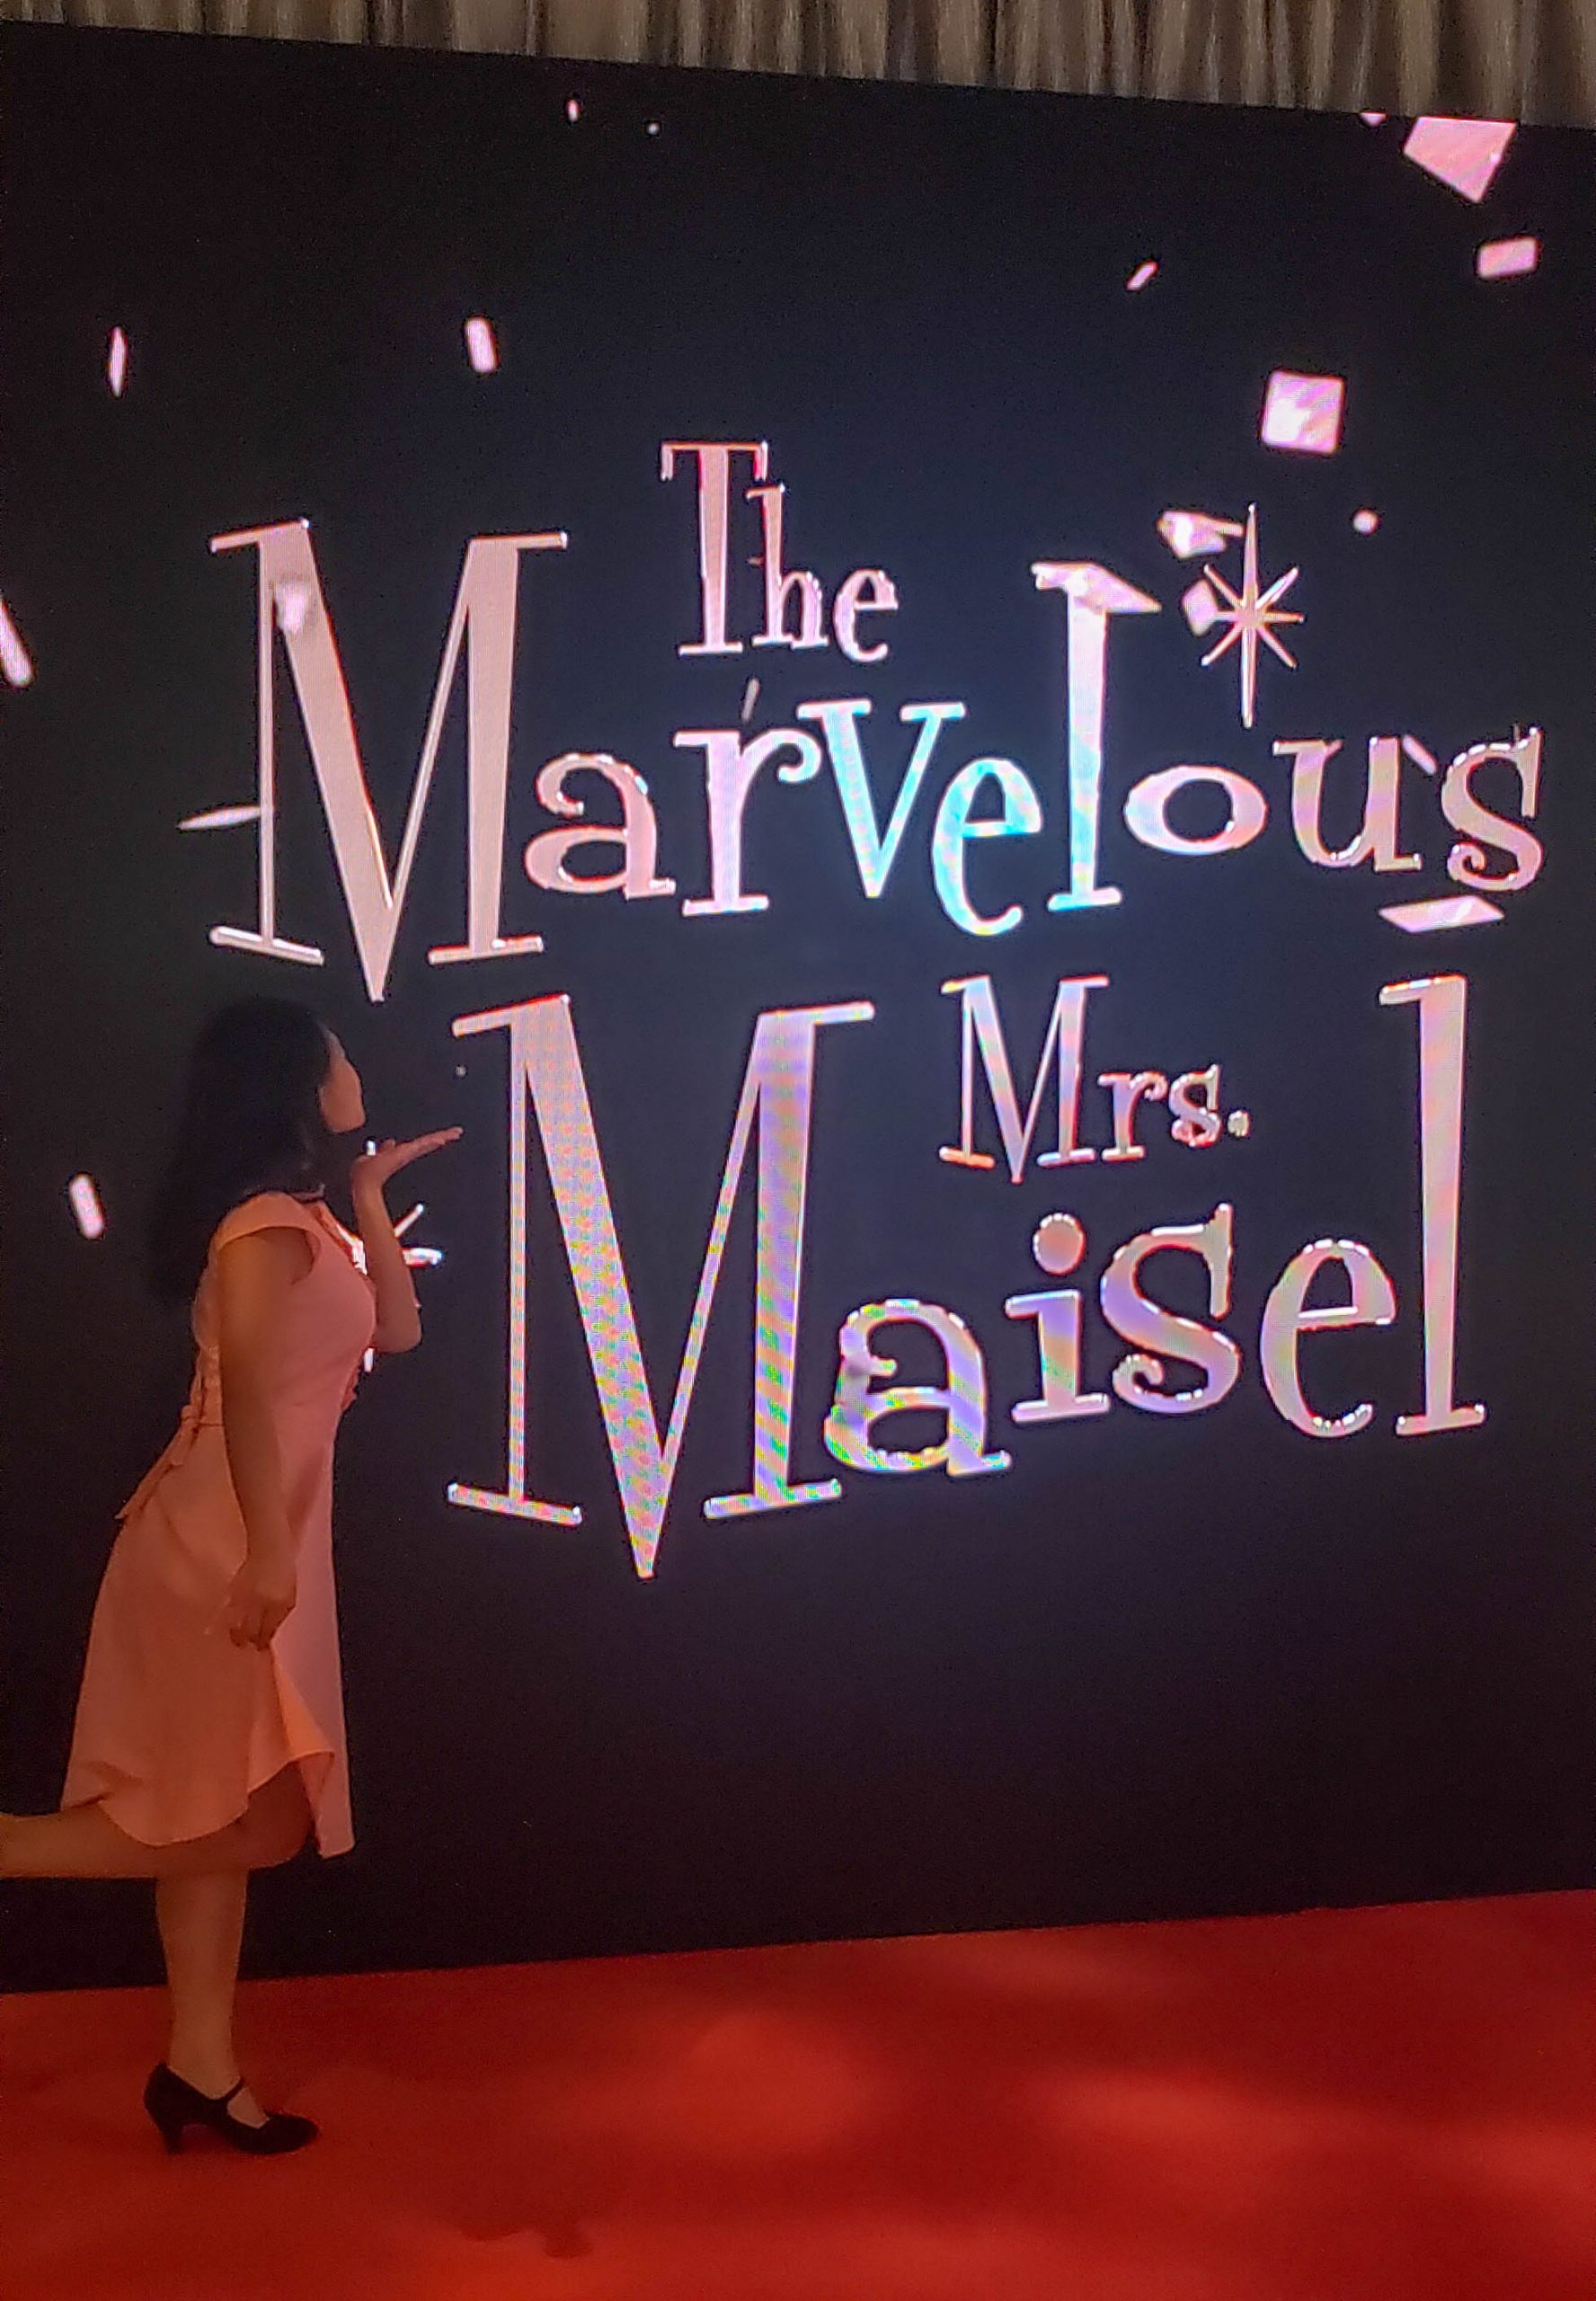 the marvelous mrs. maisel amazon prime